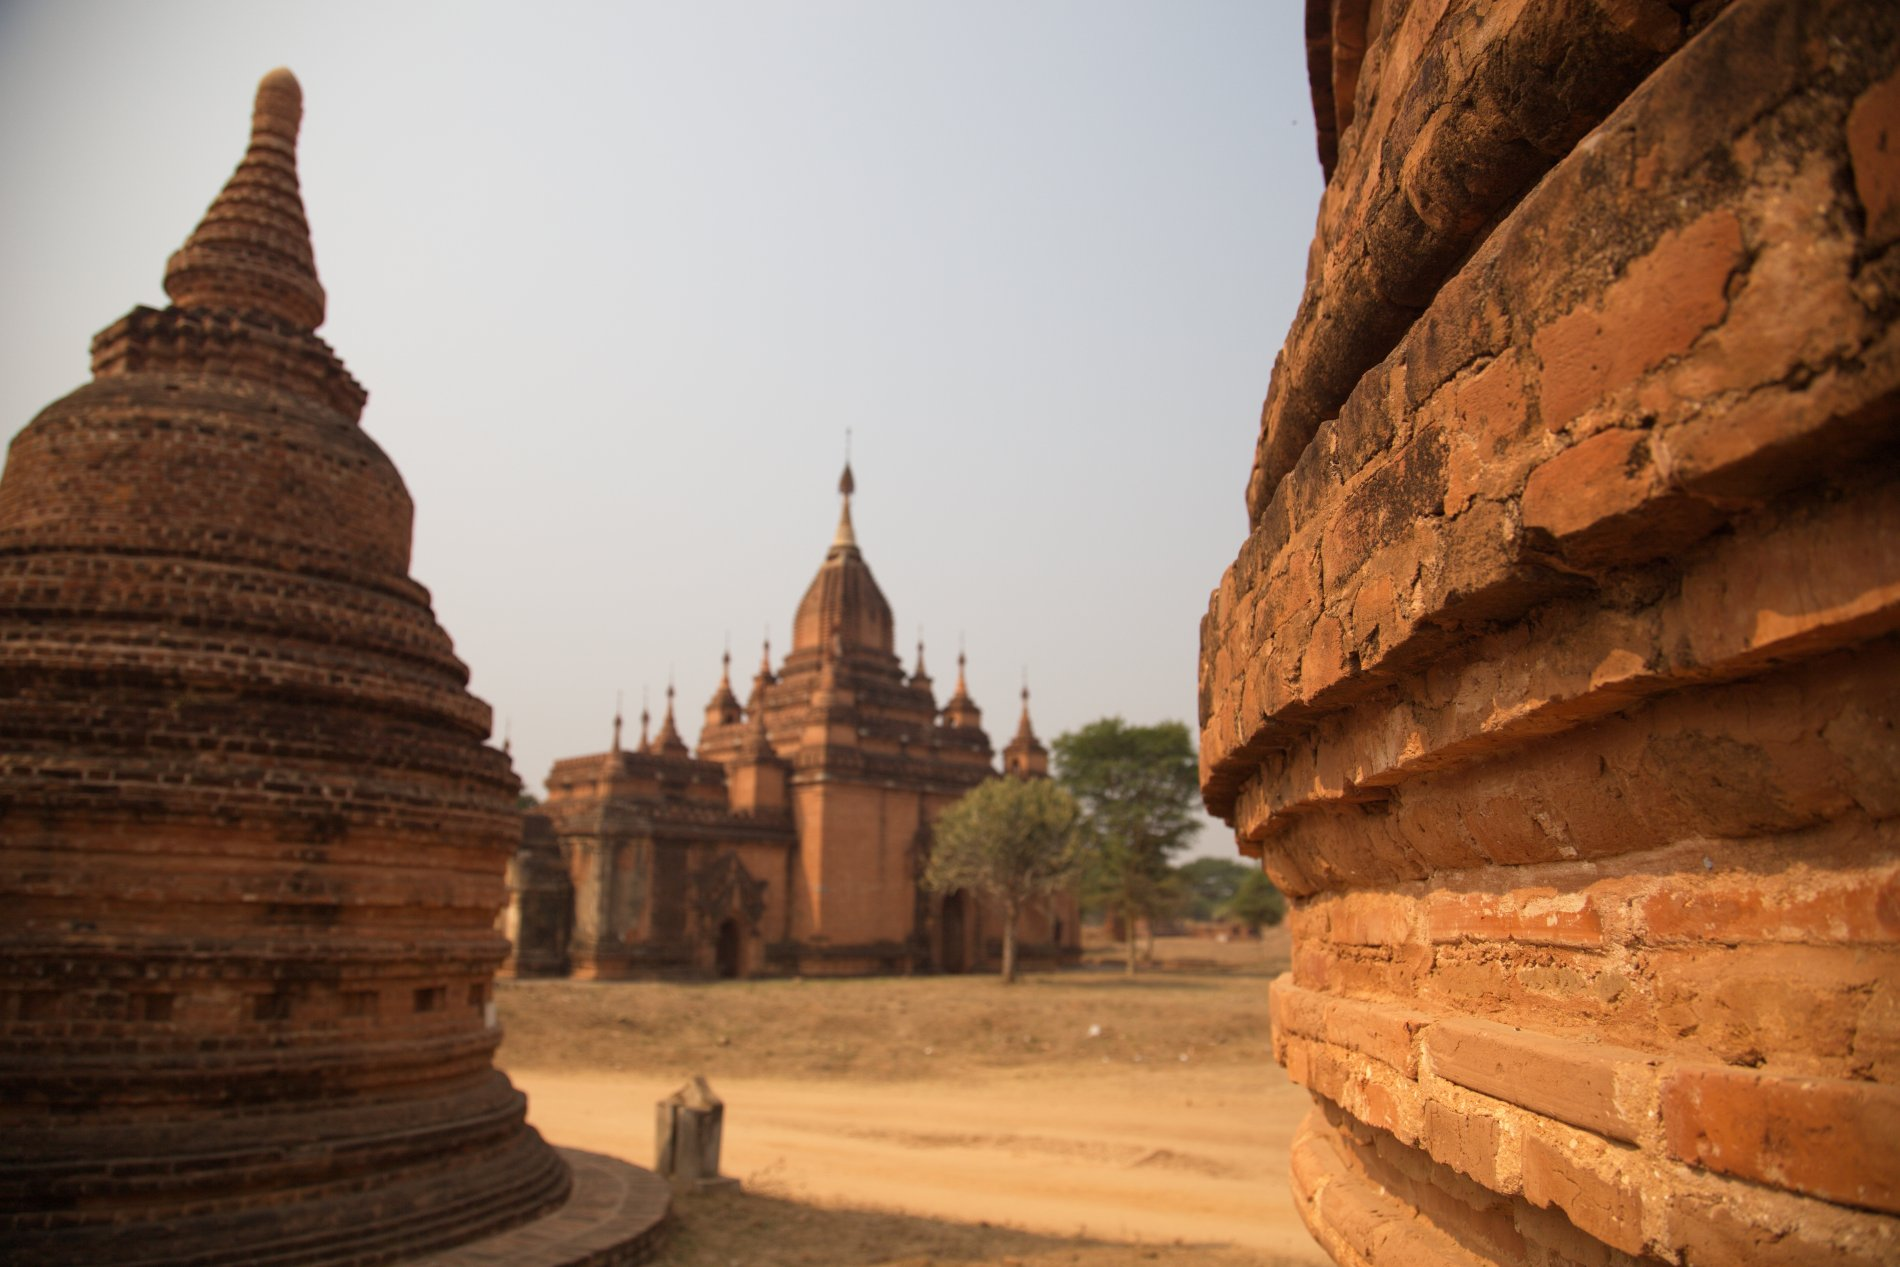 Bagan_105.jpg-commment